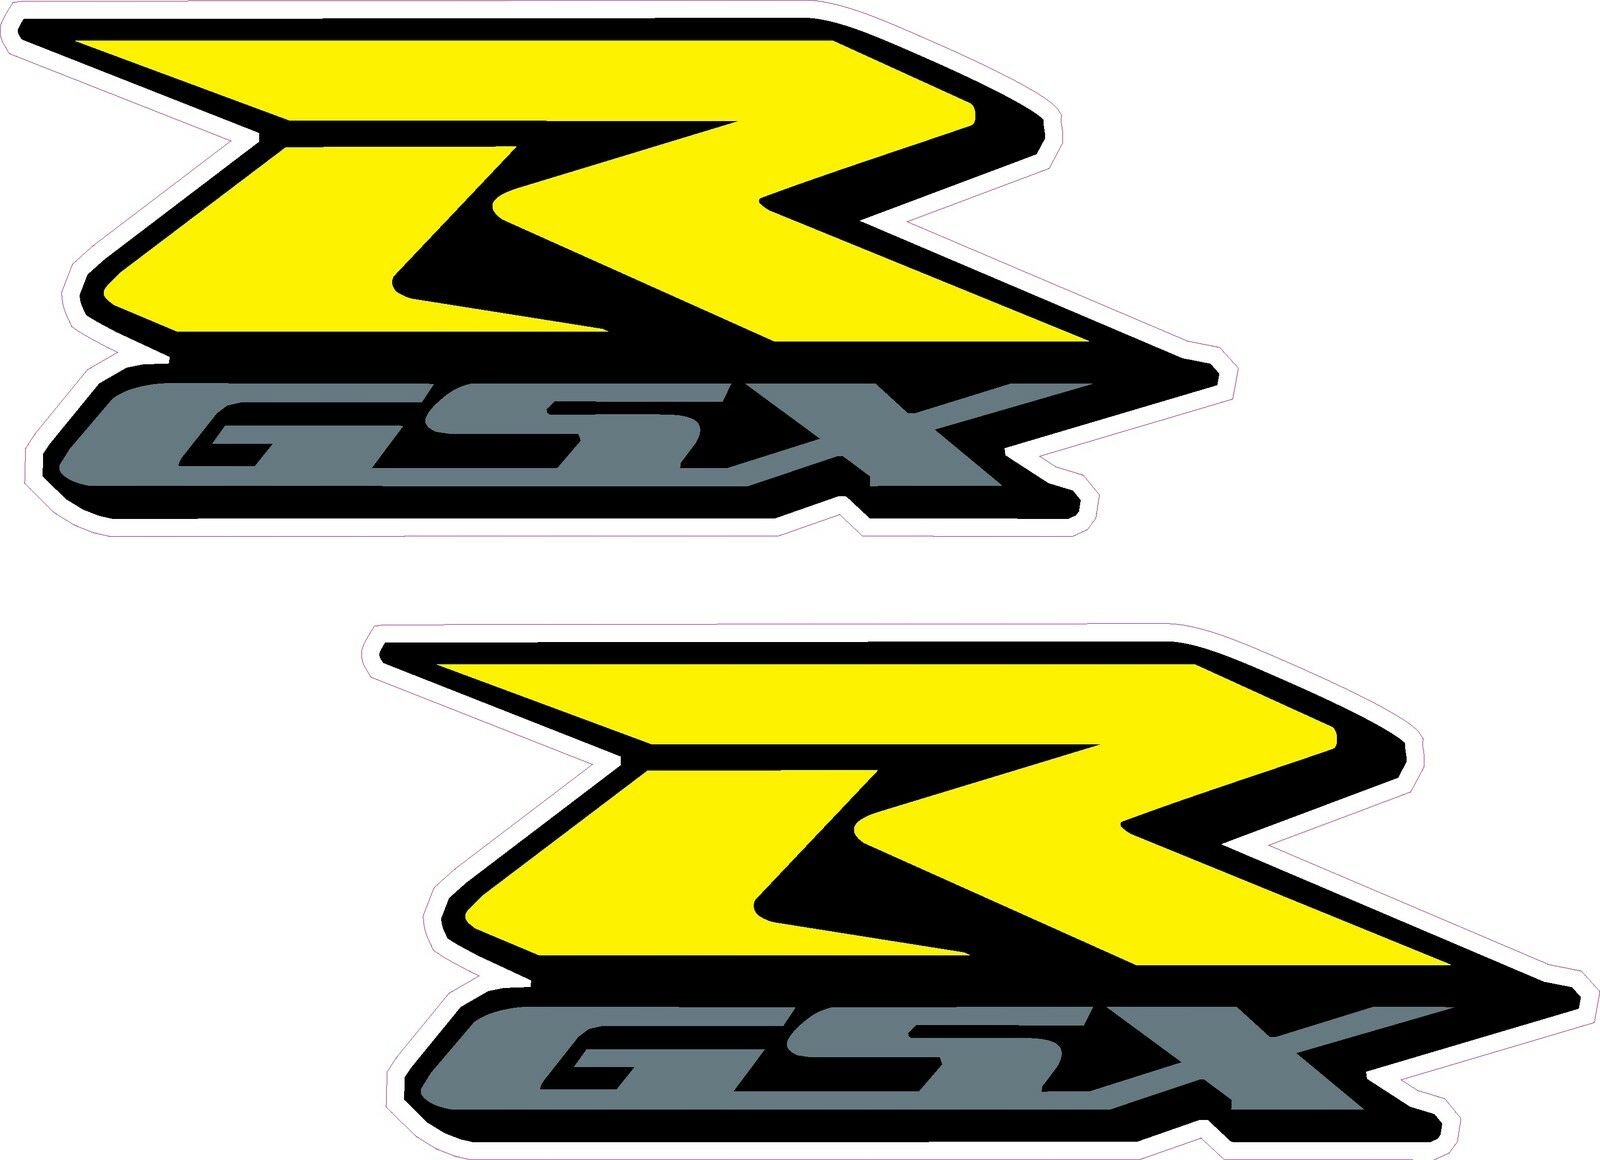 X GSXR Suzuki Motorcycle Stickersyellow Silver Mm Decals - Suzuki motorcycles stickers